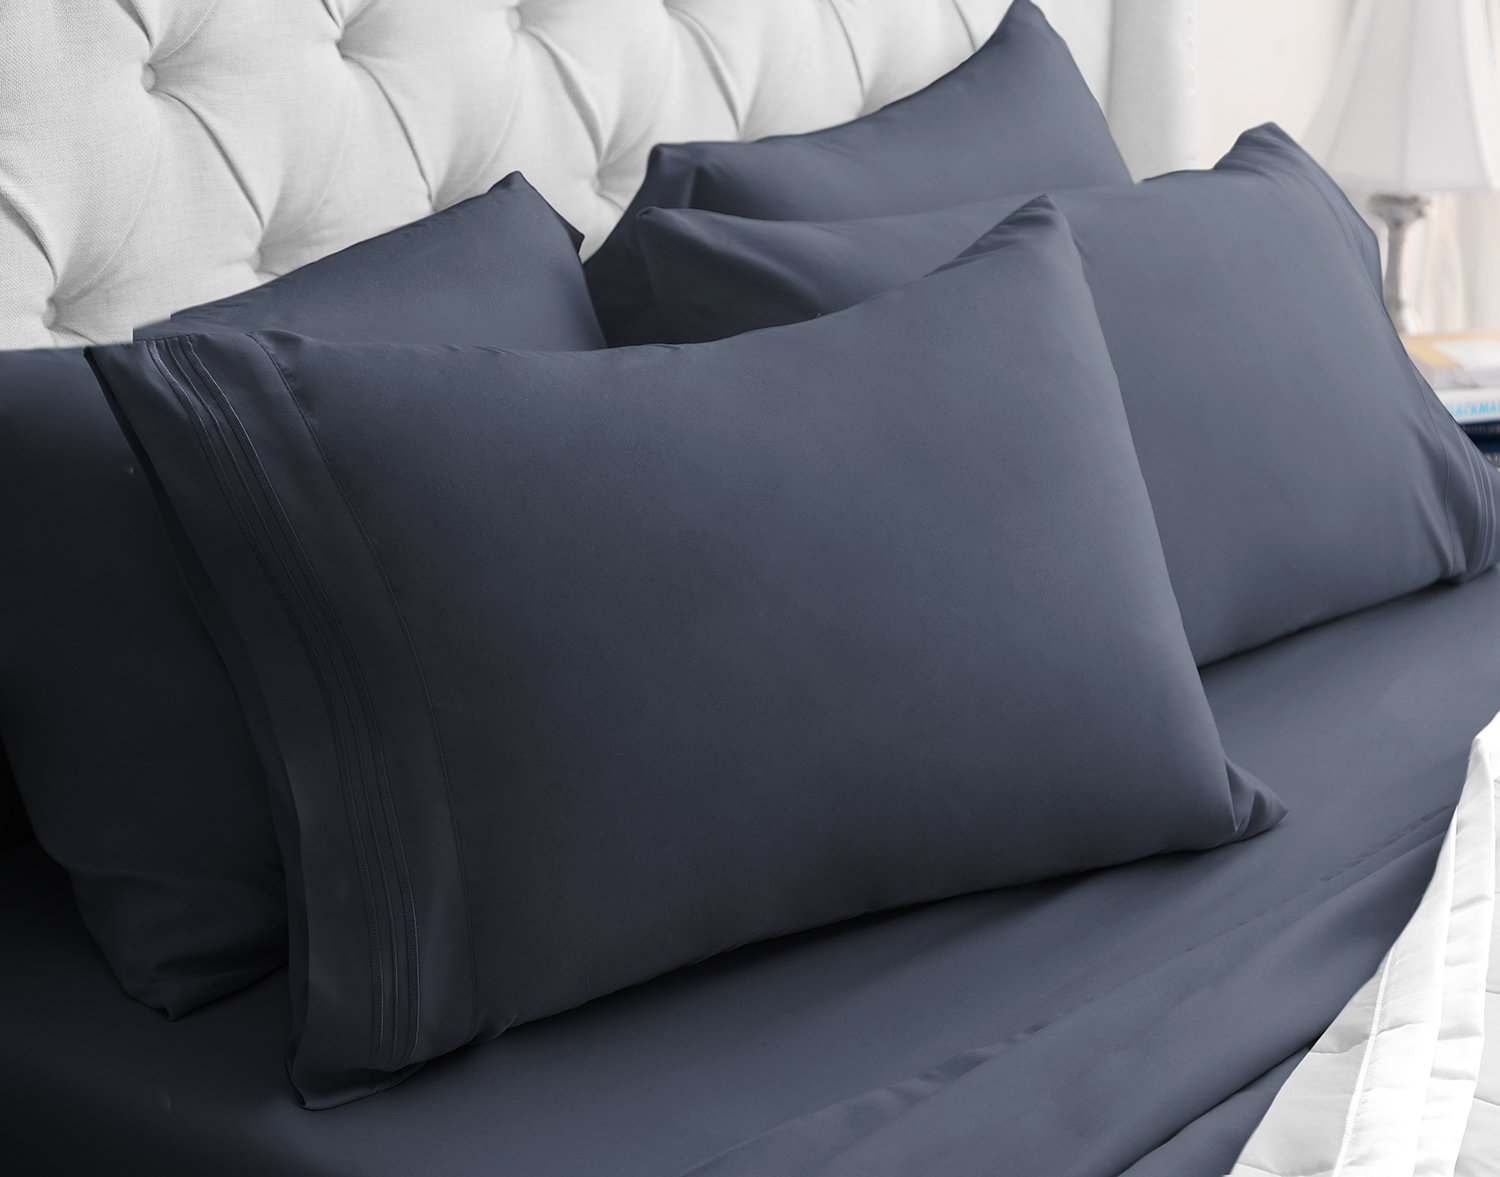 Luxor Linens - 6-Piece Sheet Set - Hotel Quality Giovanni Collection Egyptian Comfort Sheet Set - Queen - Charcoal